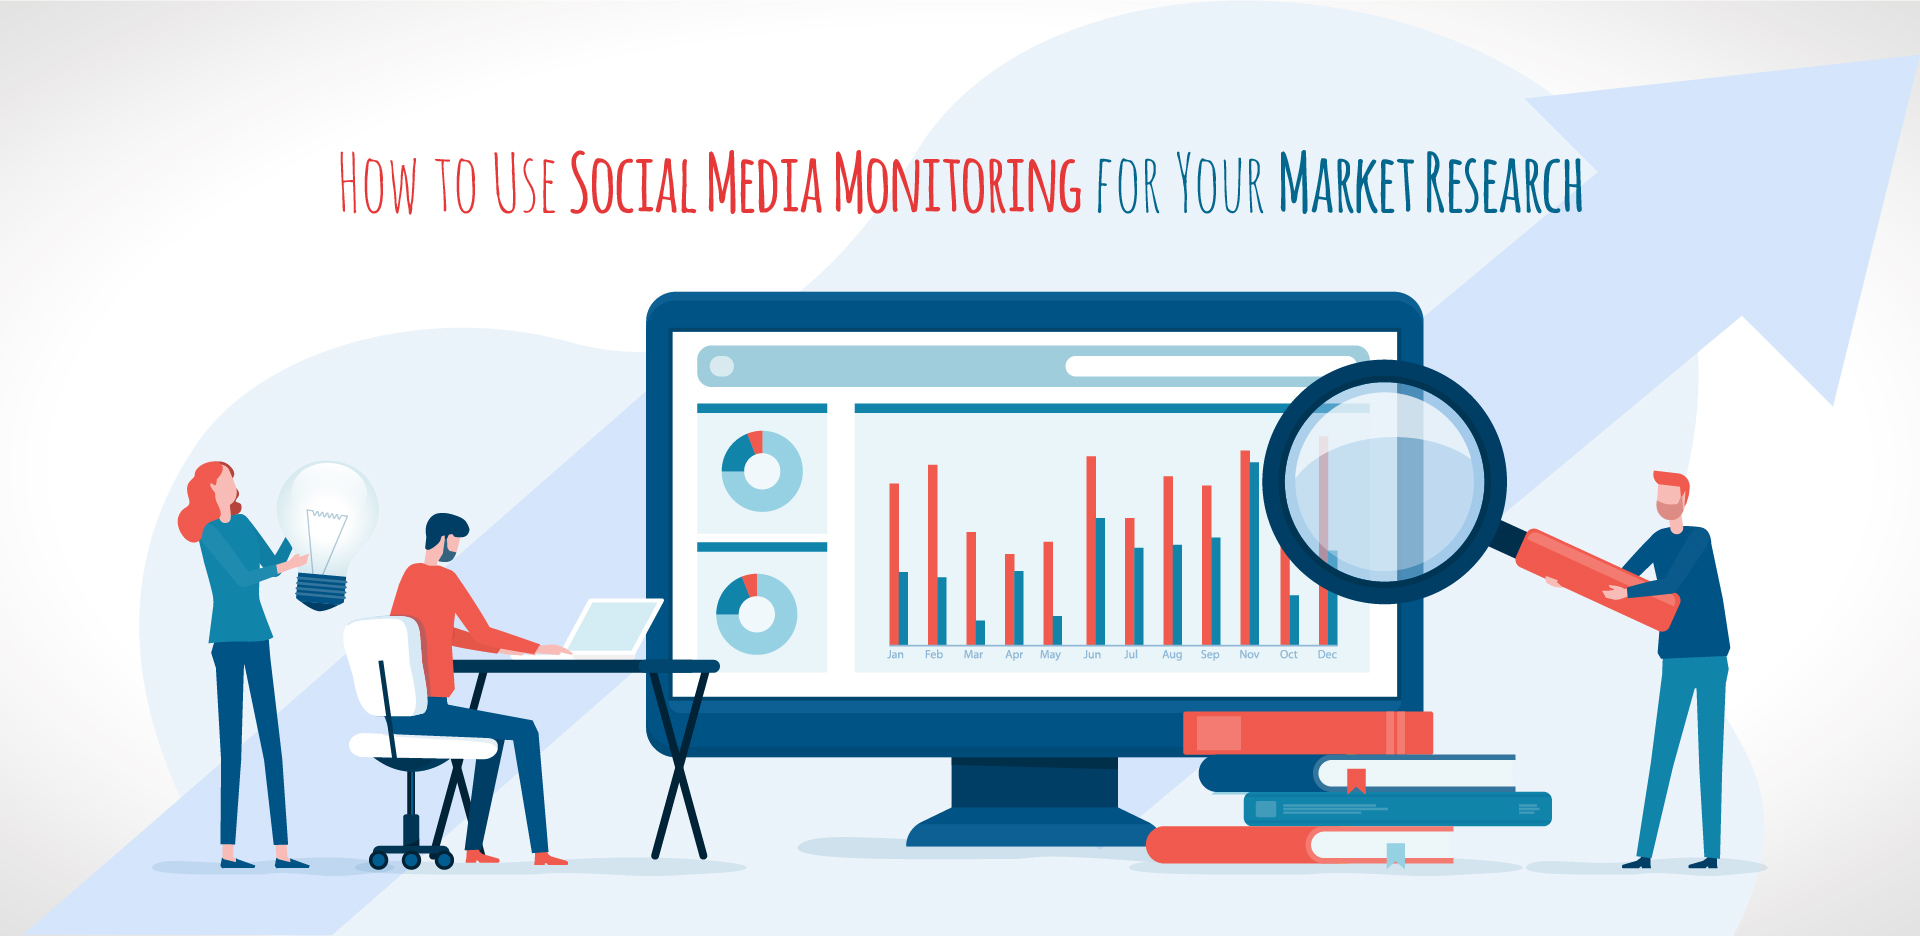 How You Can Use Social Media Monitoring for Market Research